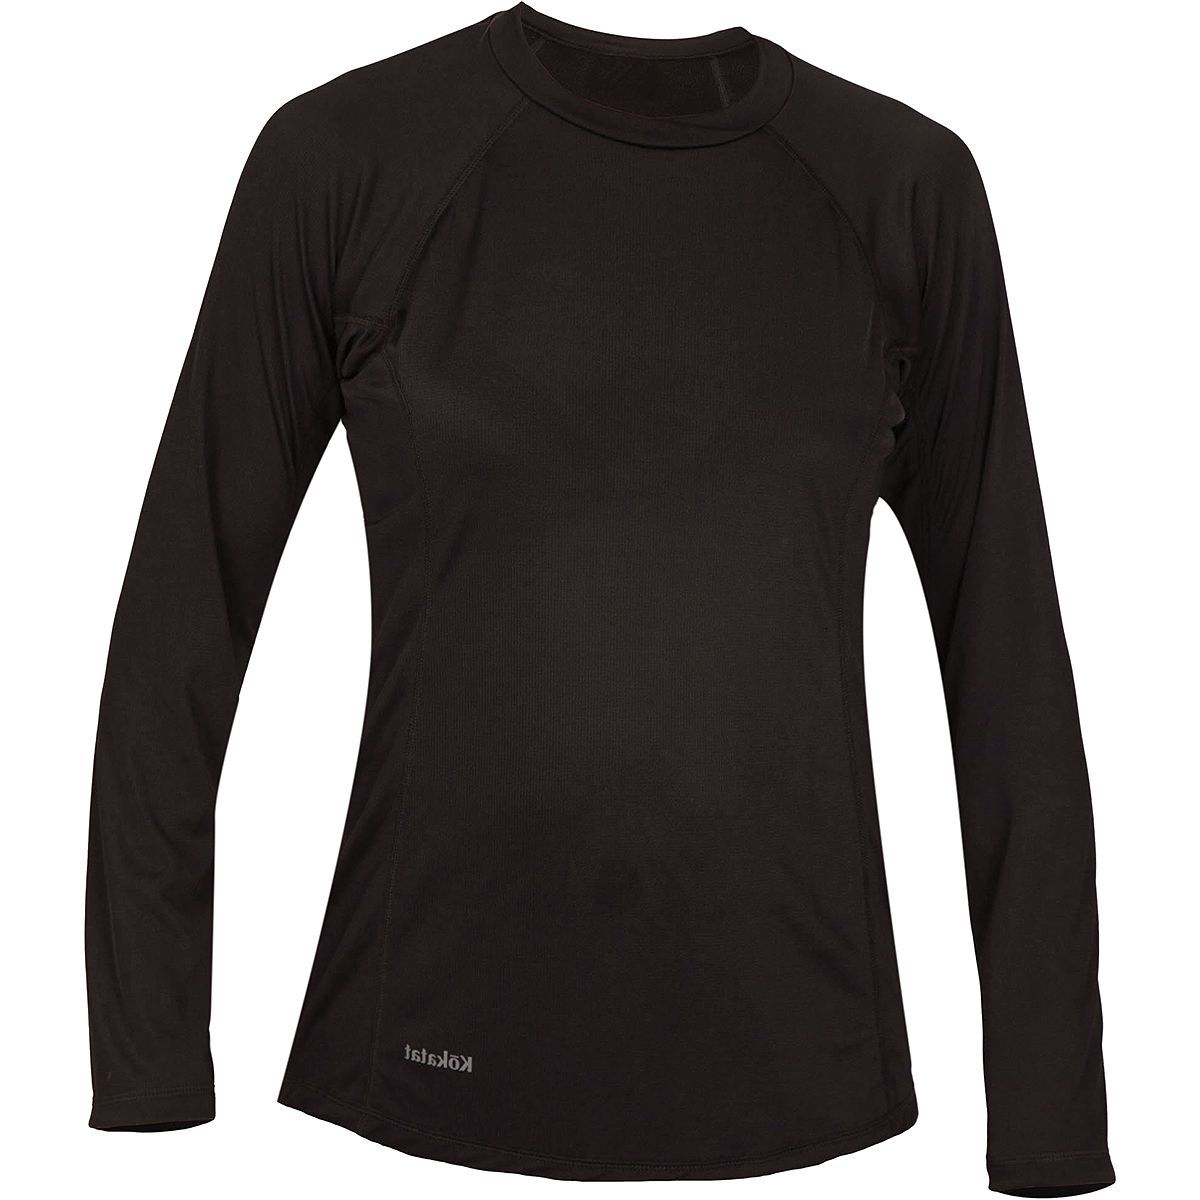 Kokatat Basecore Long Sleeve Shirt - Women's